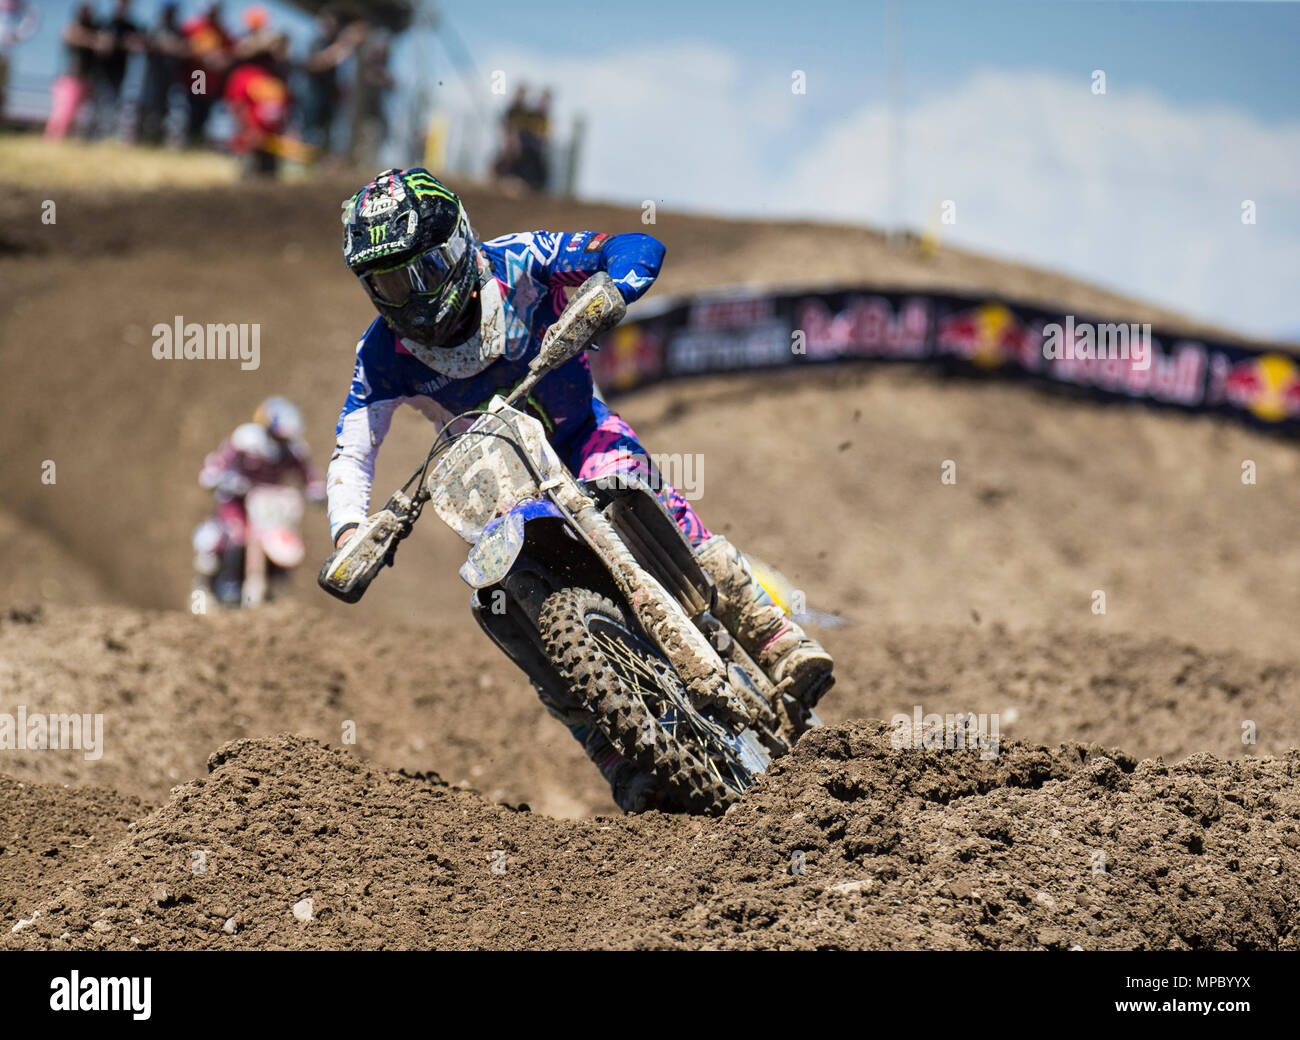 Rancho Cordova, CA. 19th May, 2018. # 51 Justin Barcia earned his first podium finish since 2016 in third place during the Lucas Oil Pro Motocross Championship 450cc class moto # 1 at Hangtown Motocross Classic Rancho Cordova, CA Thurman James/CSM/Alamy Live News - Stock Image